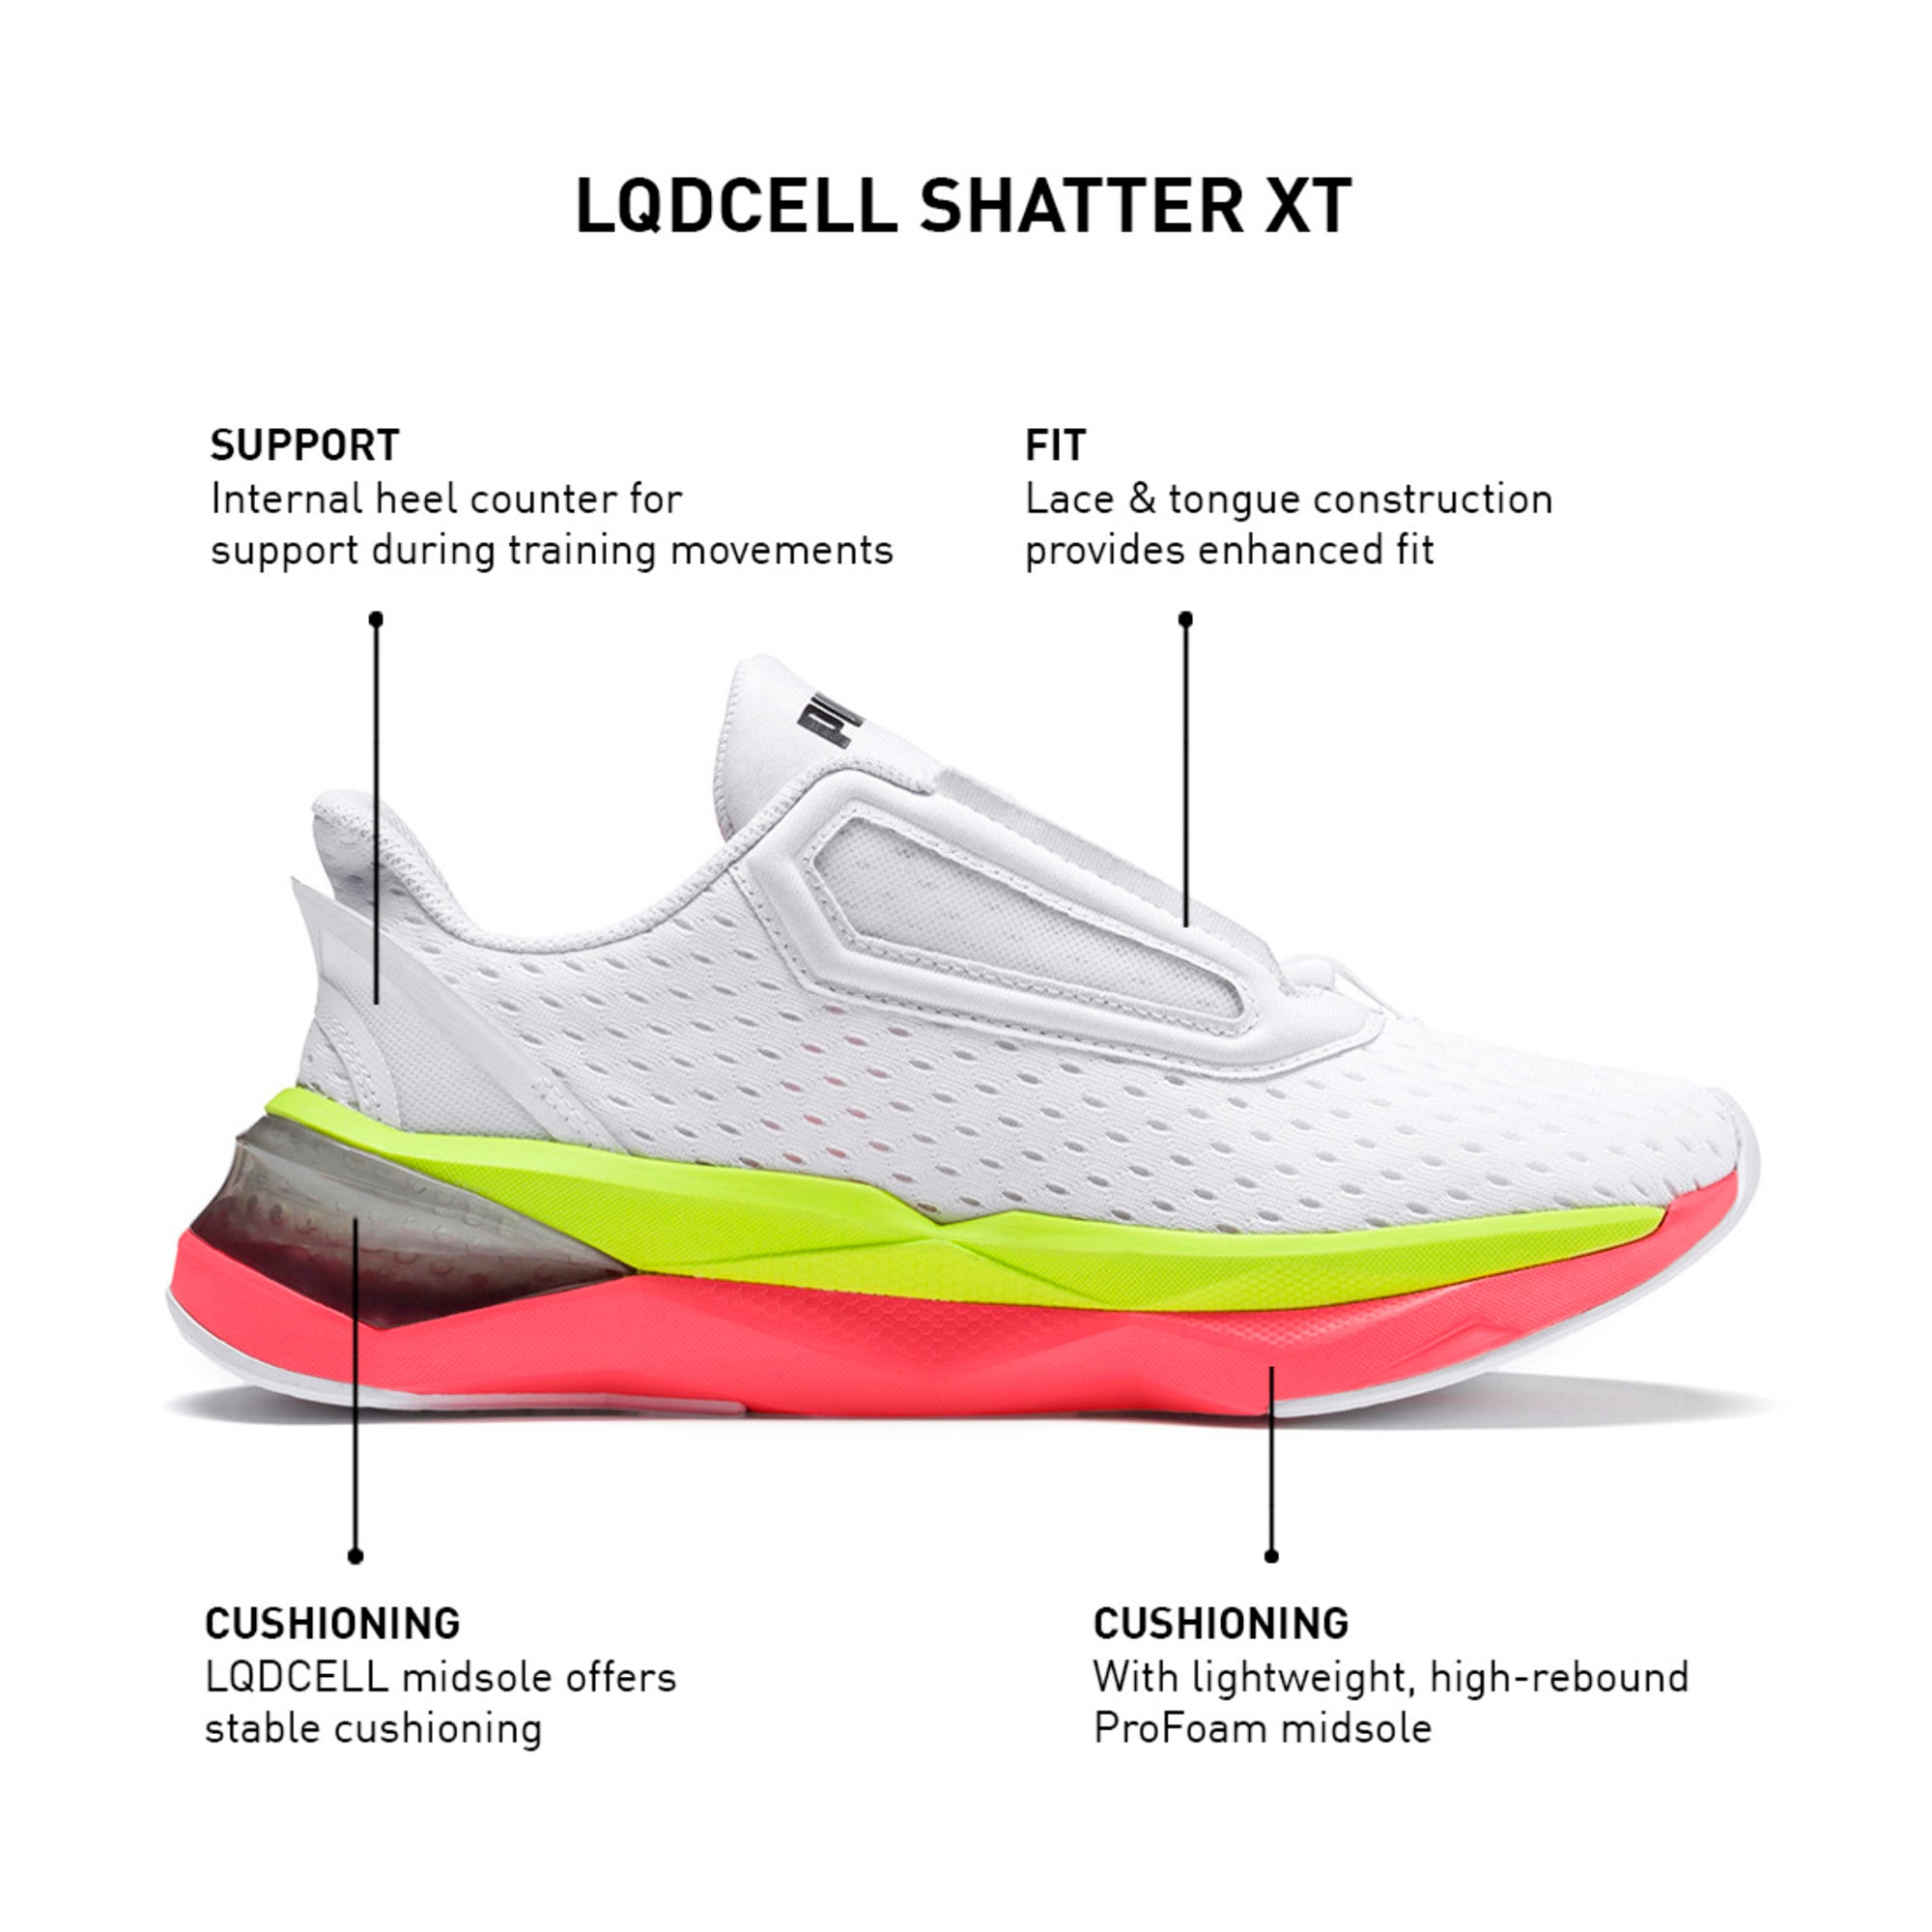 Thumbnail 10 of LQDCell Shatter XT Women's Training Shoes, Puma White-Pink Alert, medium-IND